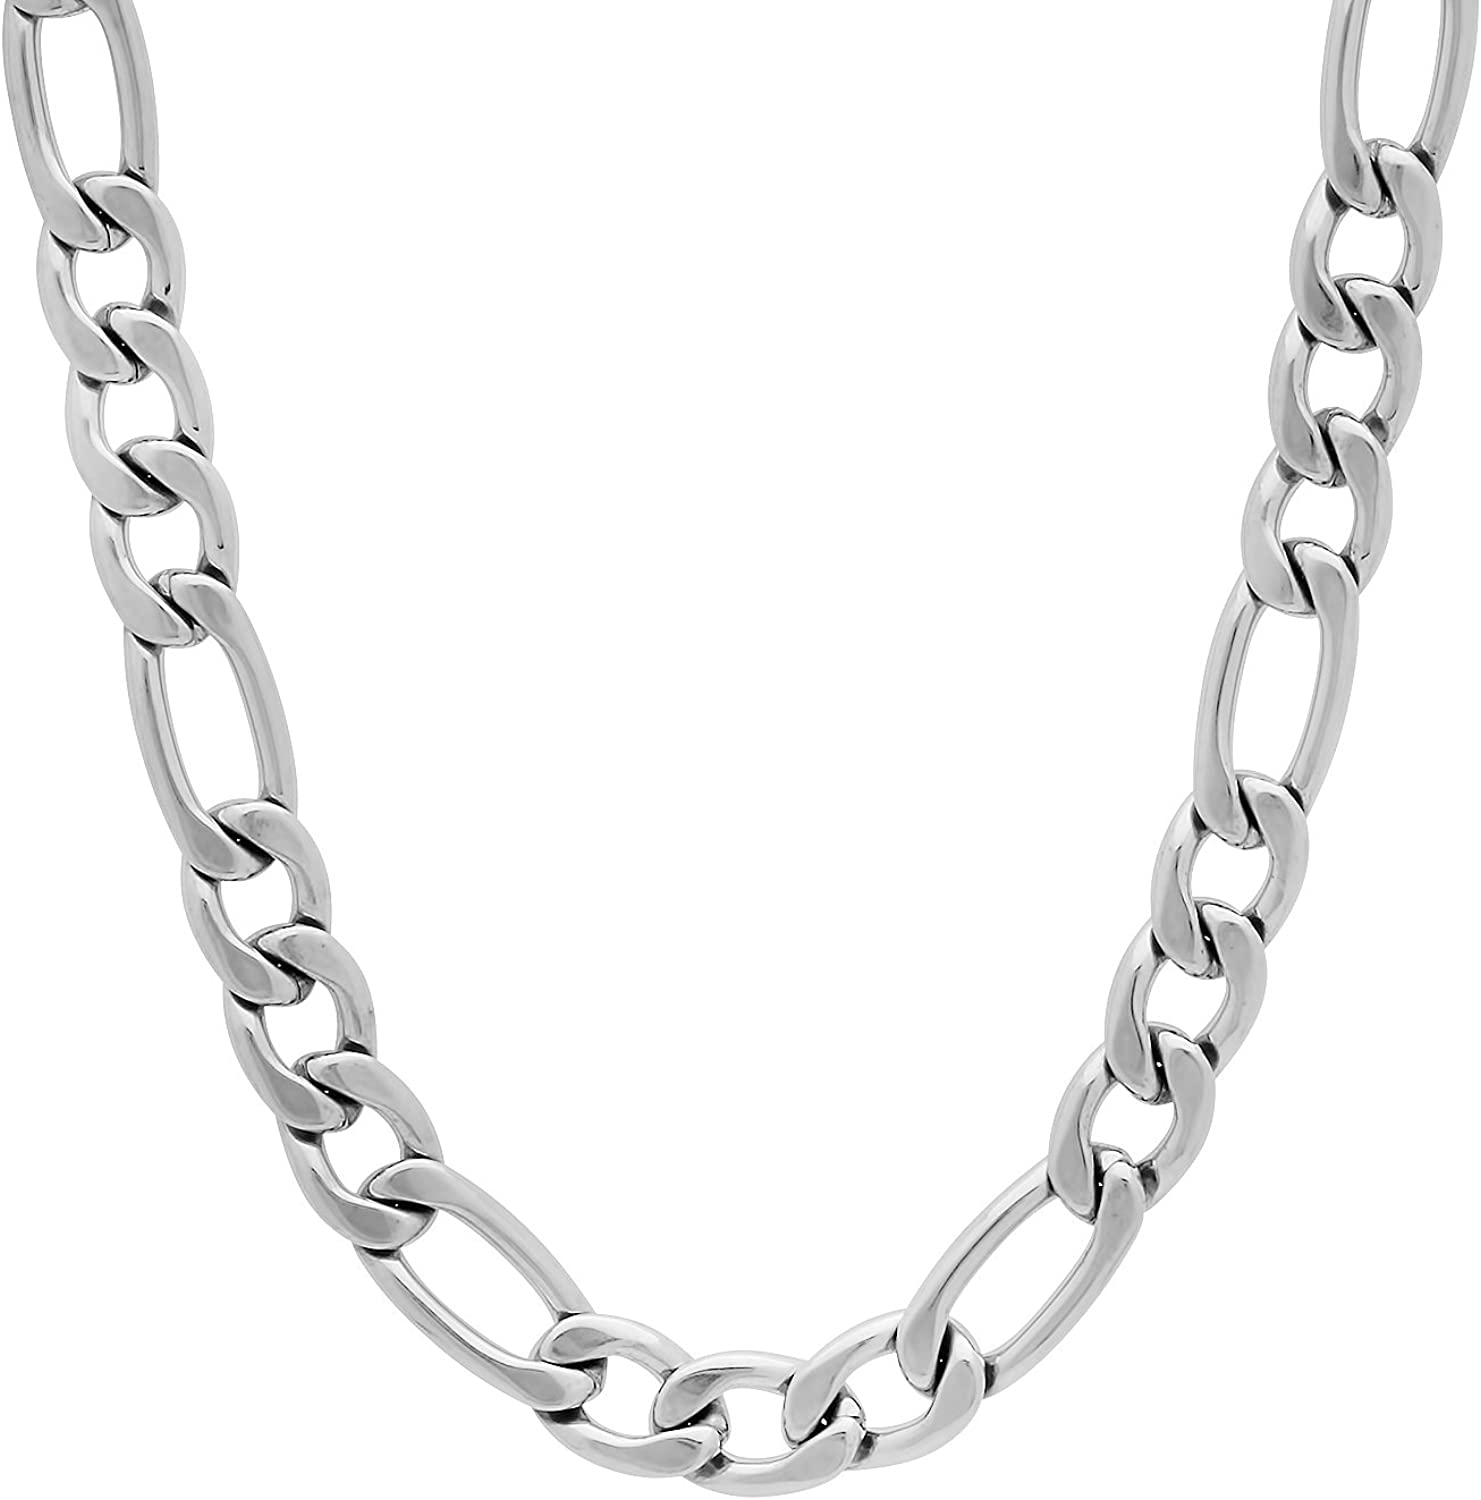 The Bling Factory 7mm High-Polished Stainless Steel Flat Figaro Chain Necklace, 20'-30